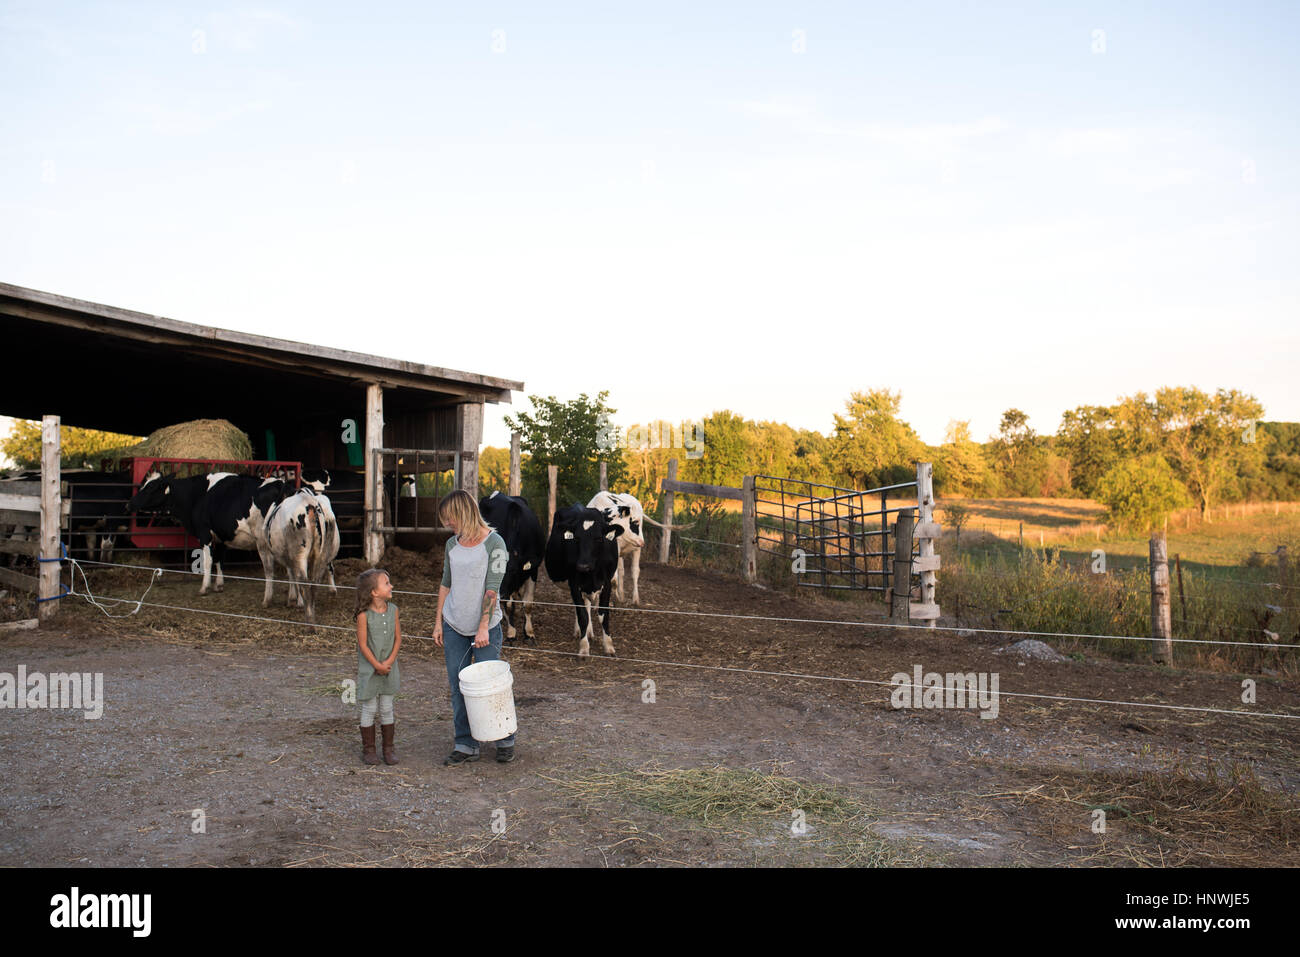 Mother and daughter standing together on farm, holding animal feed - Stock Image